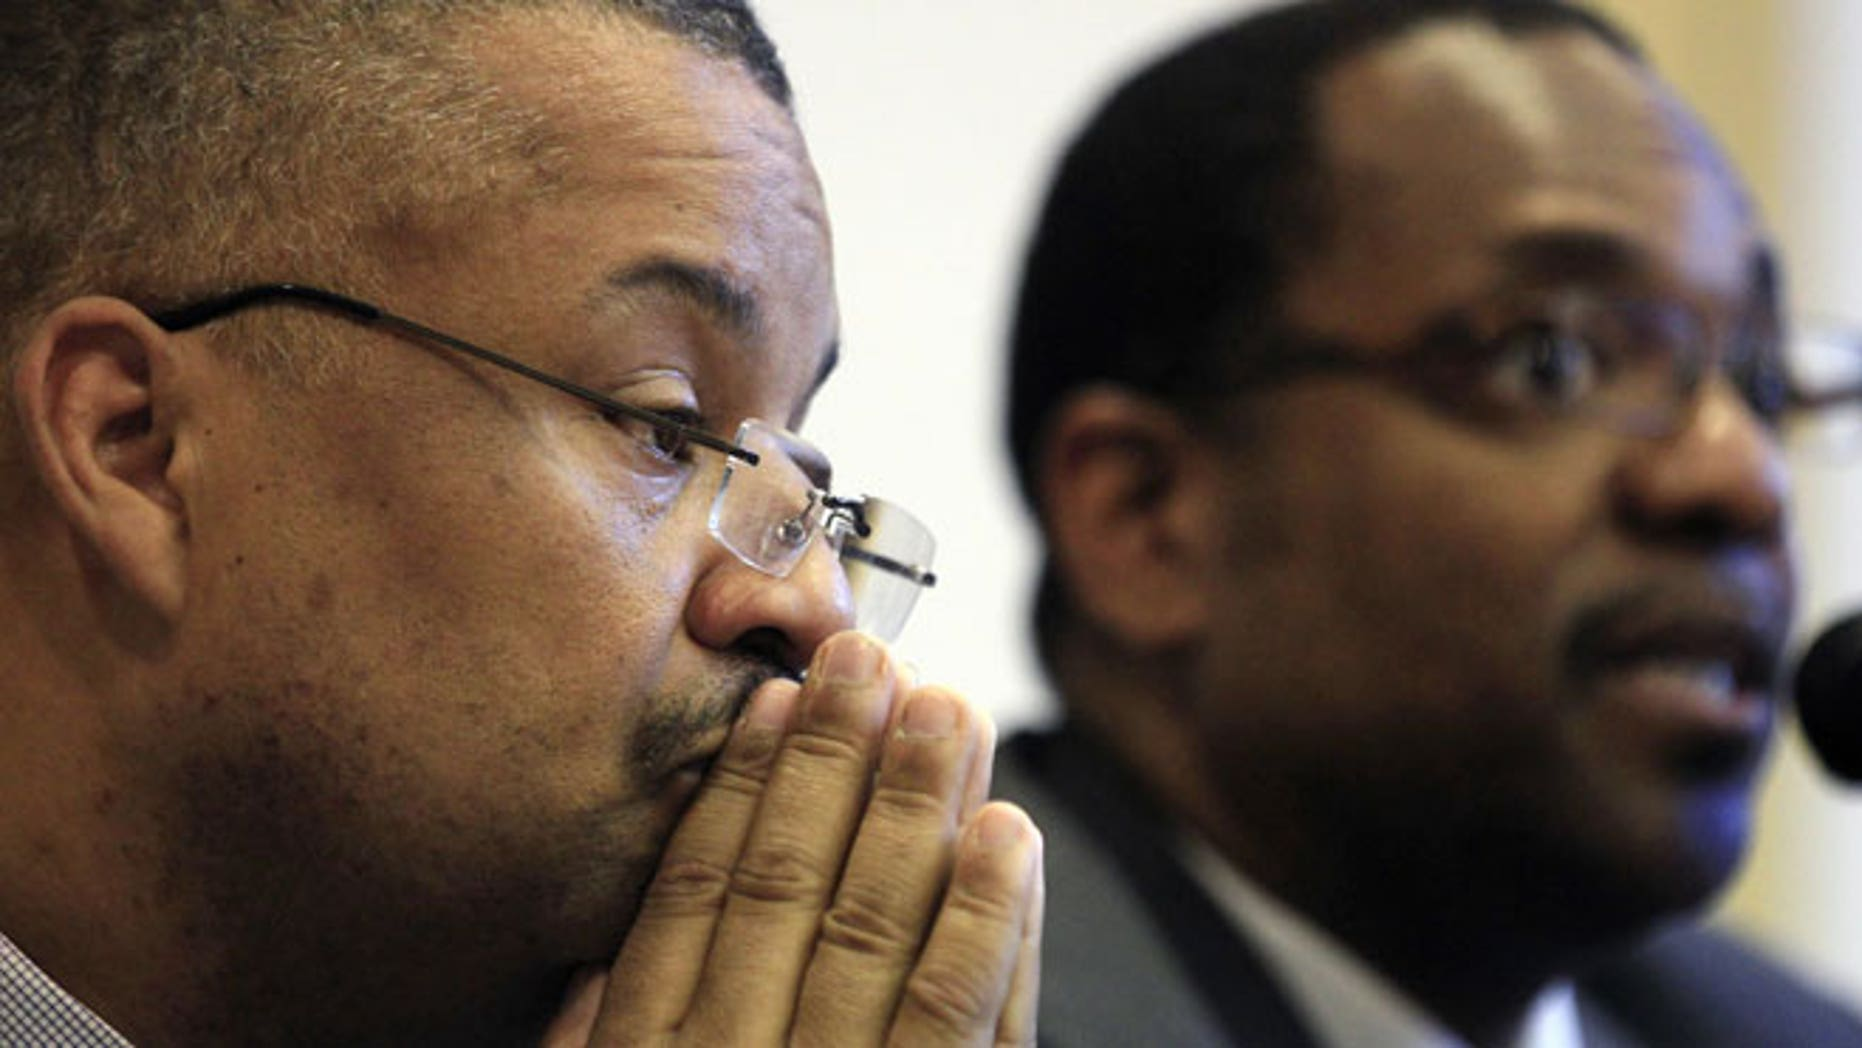 May 23, 2012: Newark Councilman Donald Payne Jr., left, son of the late New Jersey Rep. Donald Payne, listens as fellow Newark Councilman Ron Rice addresses a gathering in West Orange, N.J.